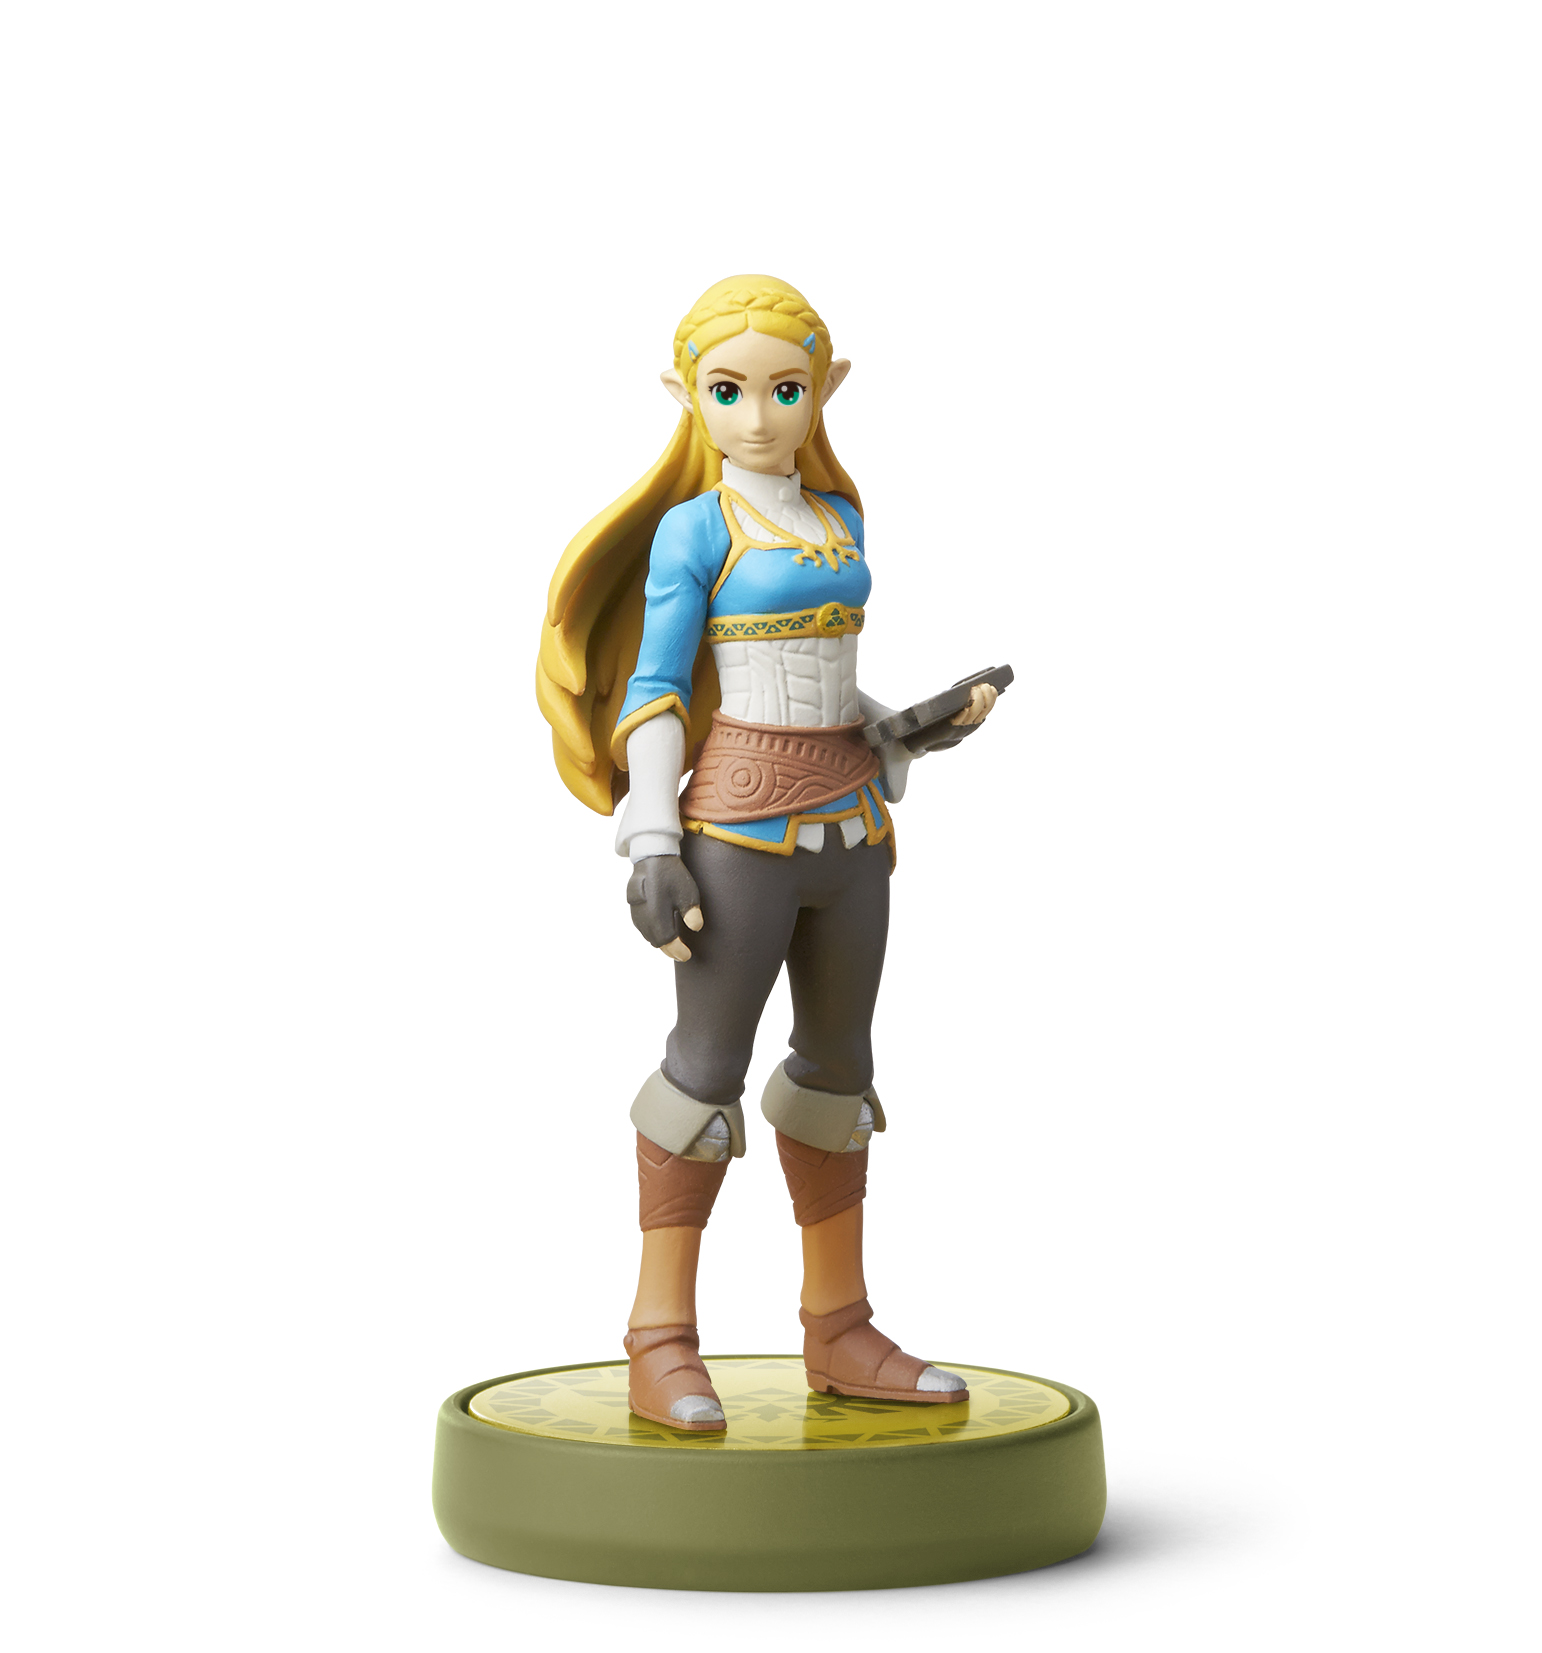 Zelda: Breath of the Wild amiibo guide: how to use amiibo and what